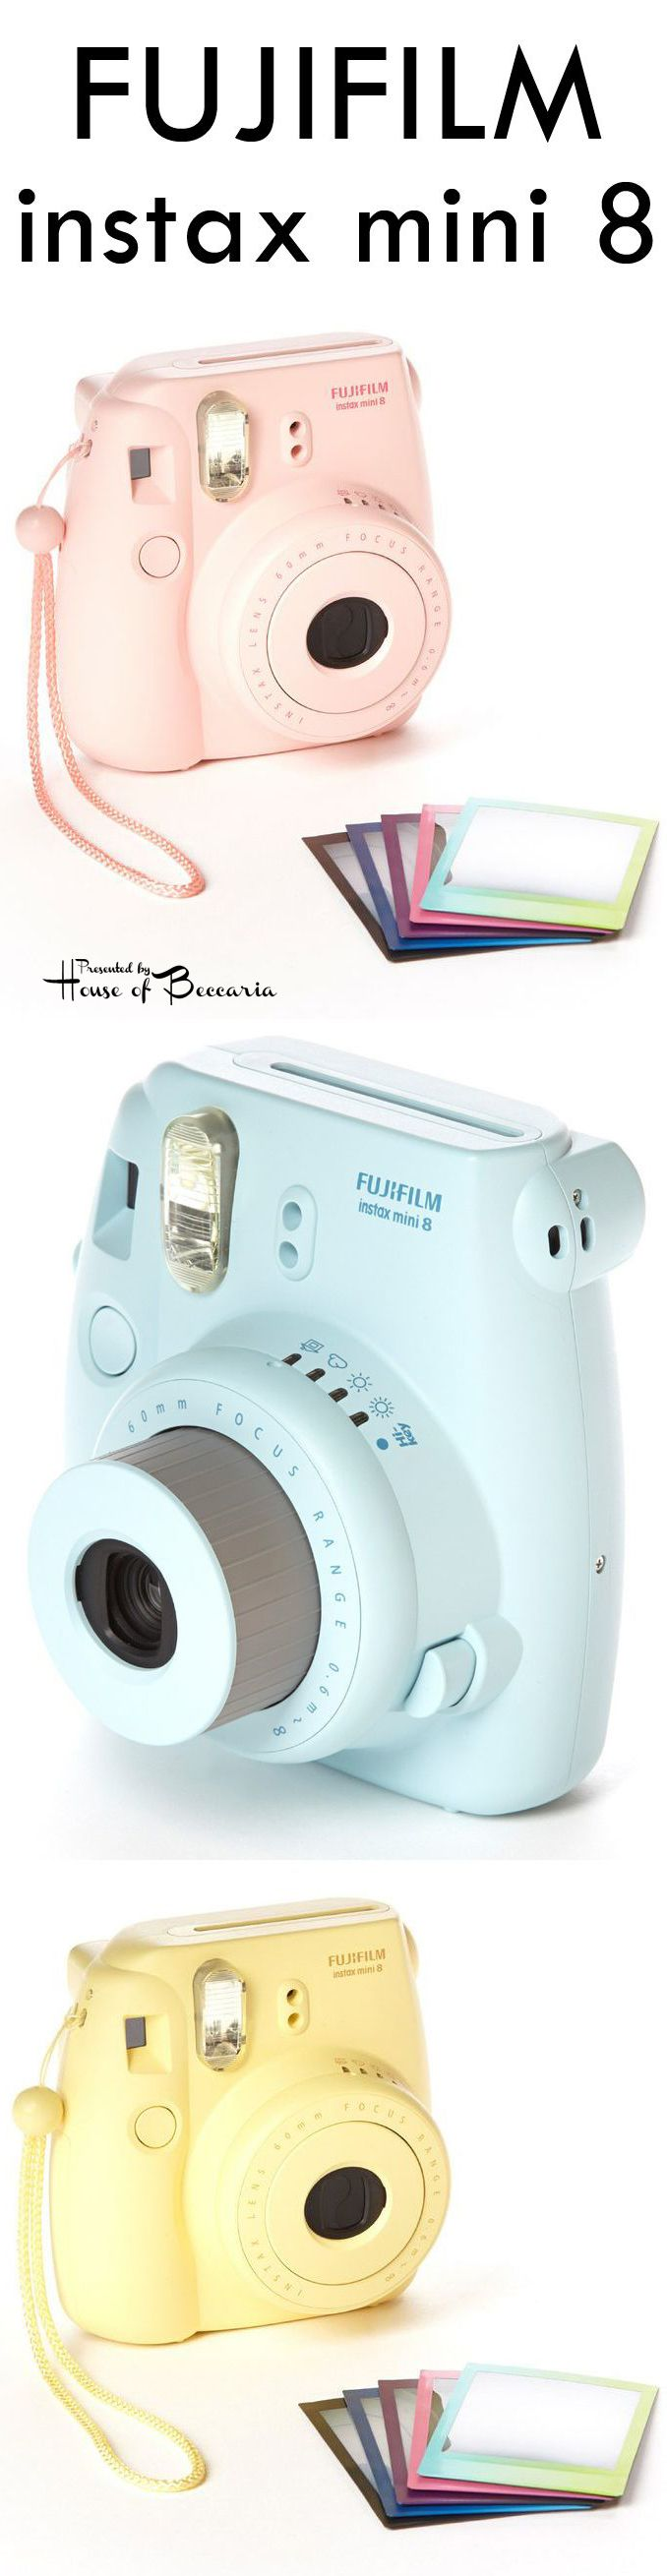 ~Don't Forget To Bring Your Fujifilm Instax Mini 8 Camera   House of Beccaria